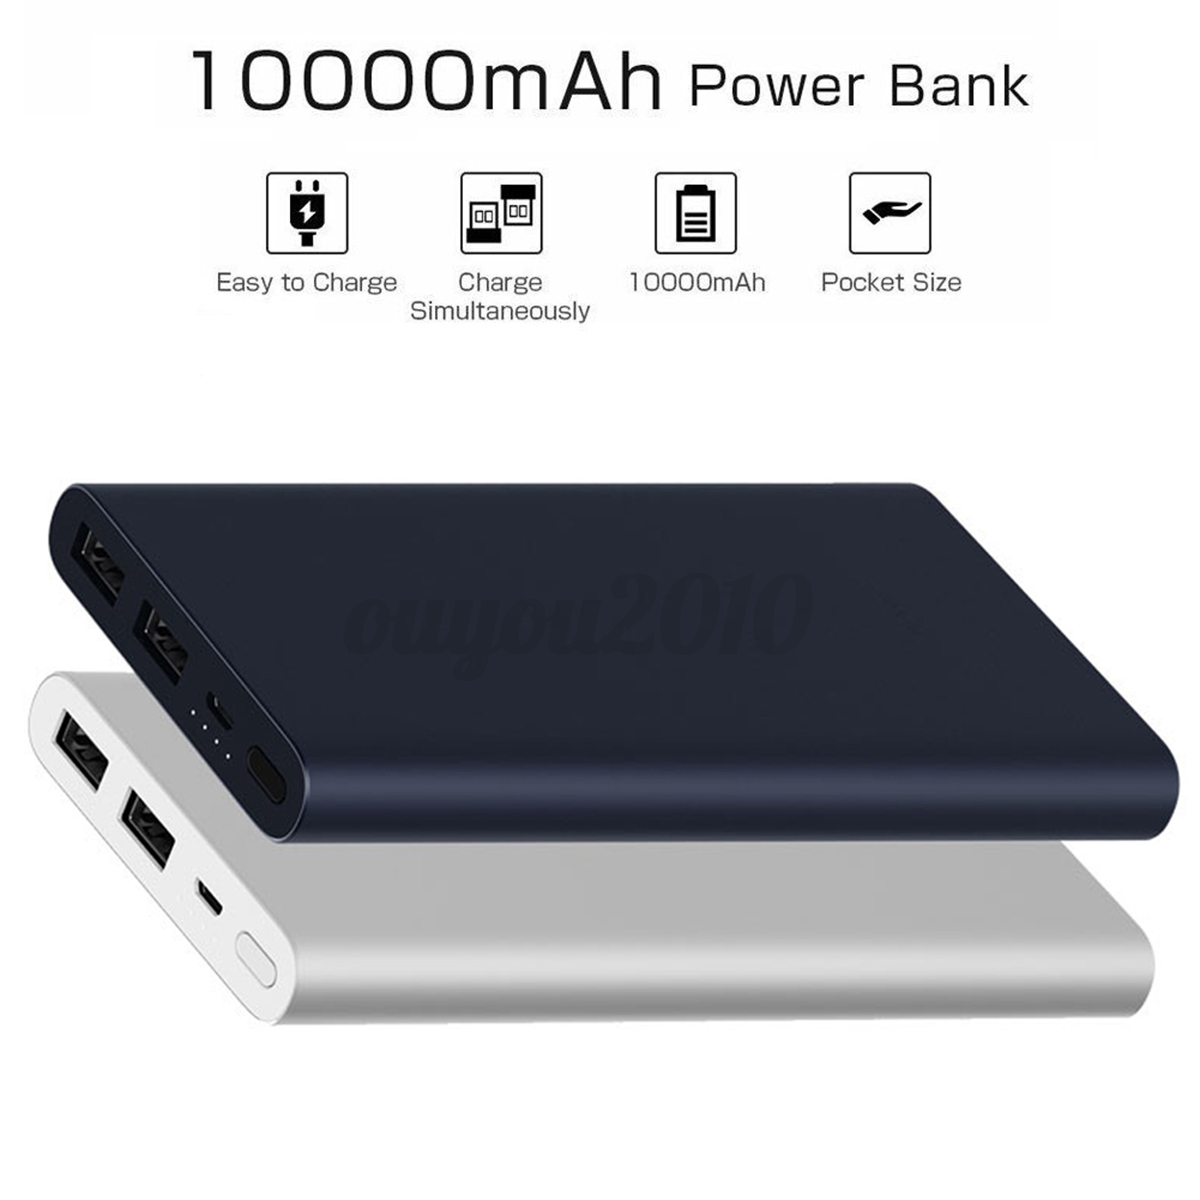 Original Xiaomi Powerbank Mi 2 10000mah Dual Usb Ladegert Power Bank Slim Fast Charge Fr Handy